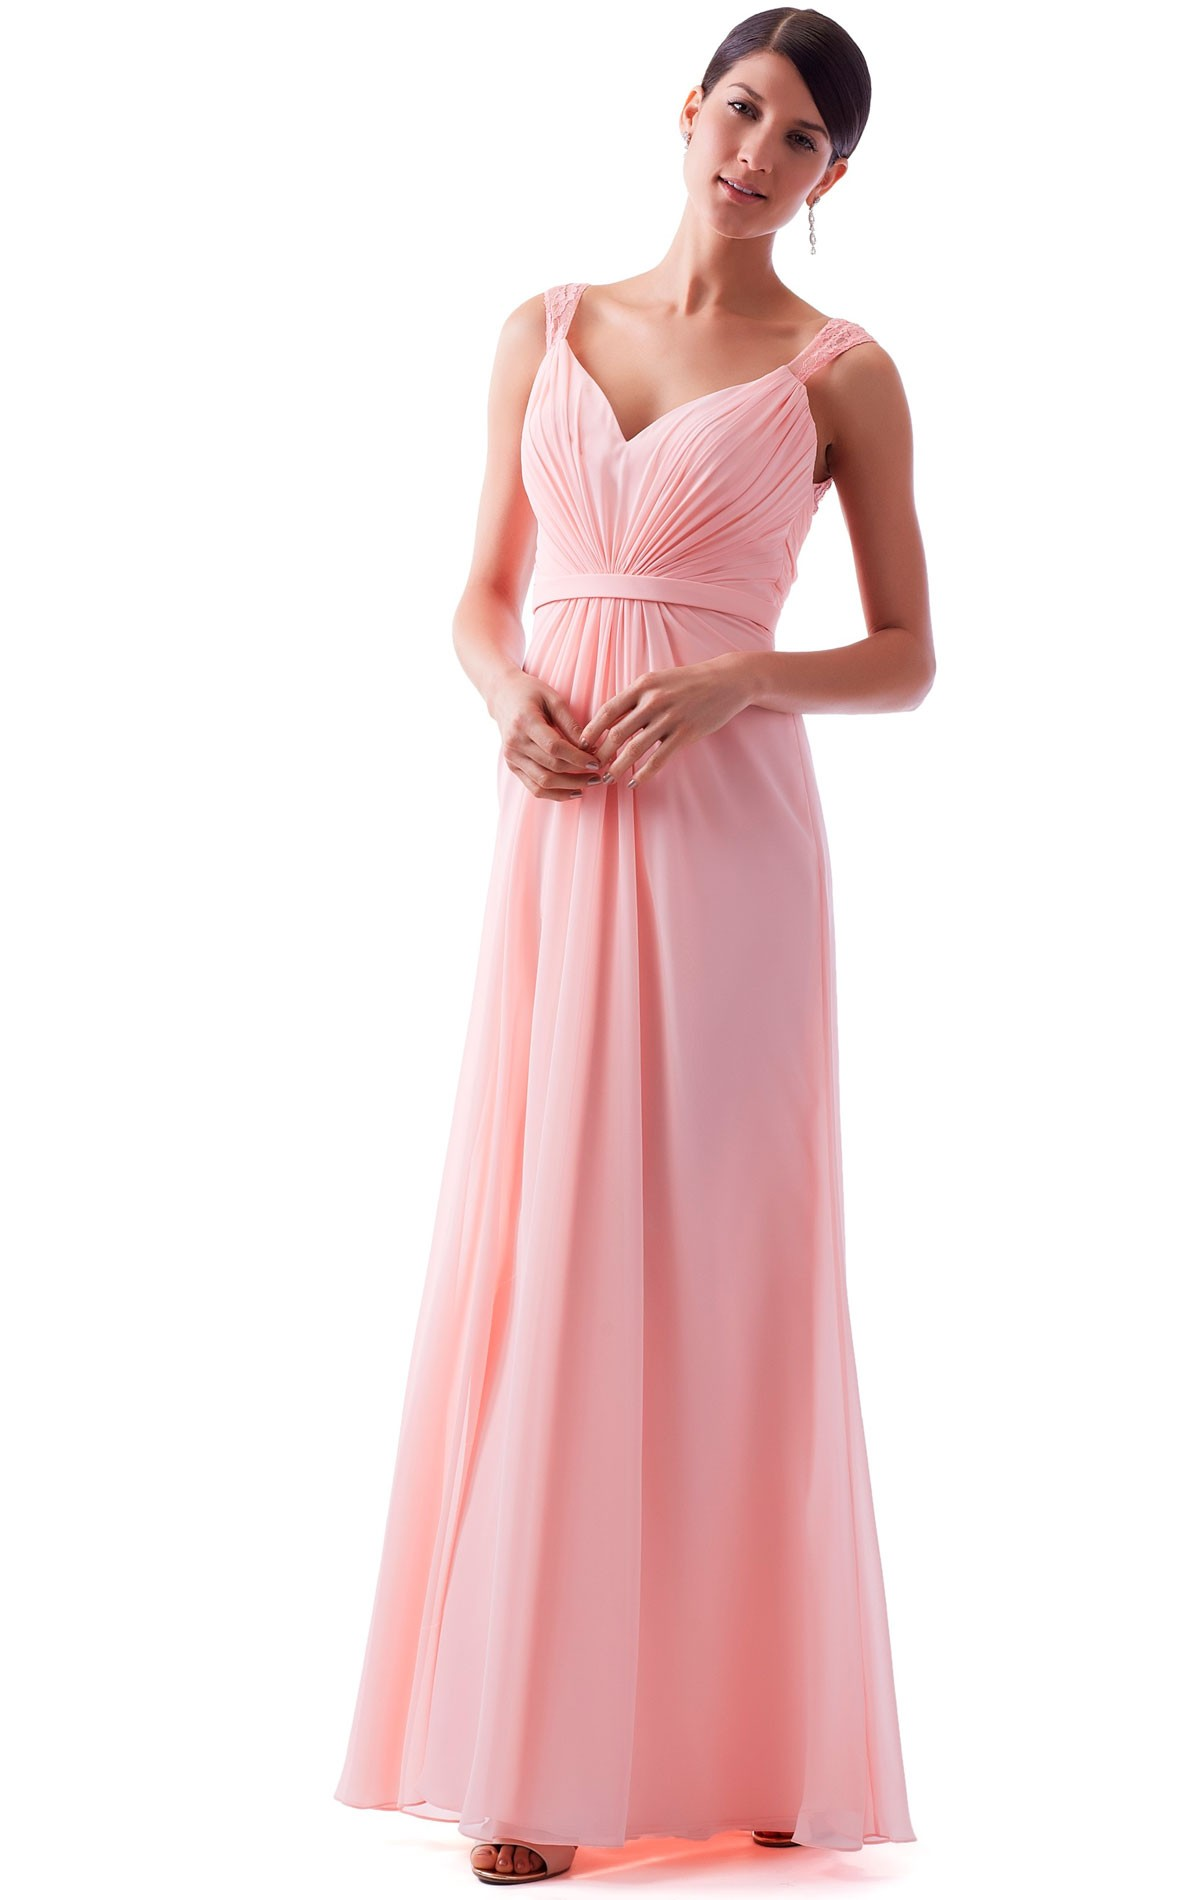 Bridesmaid Dress Venus BM1823 | Blessings of Brighton